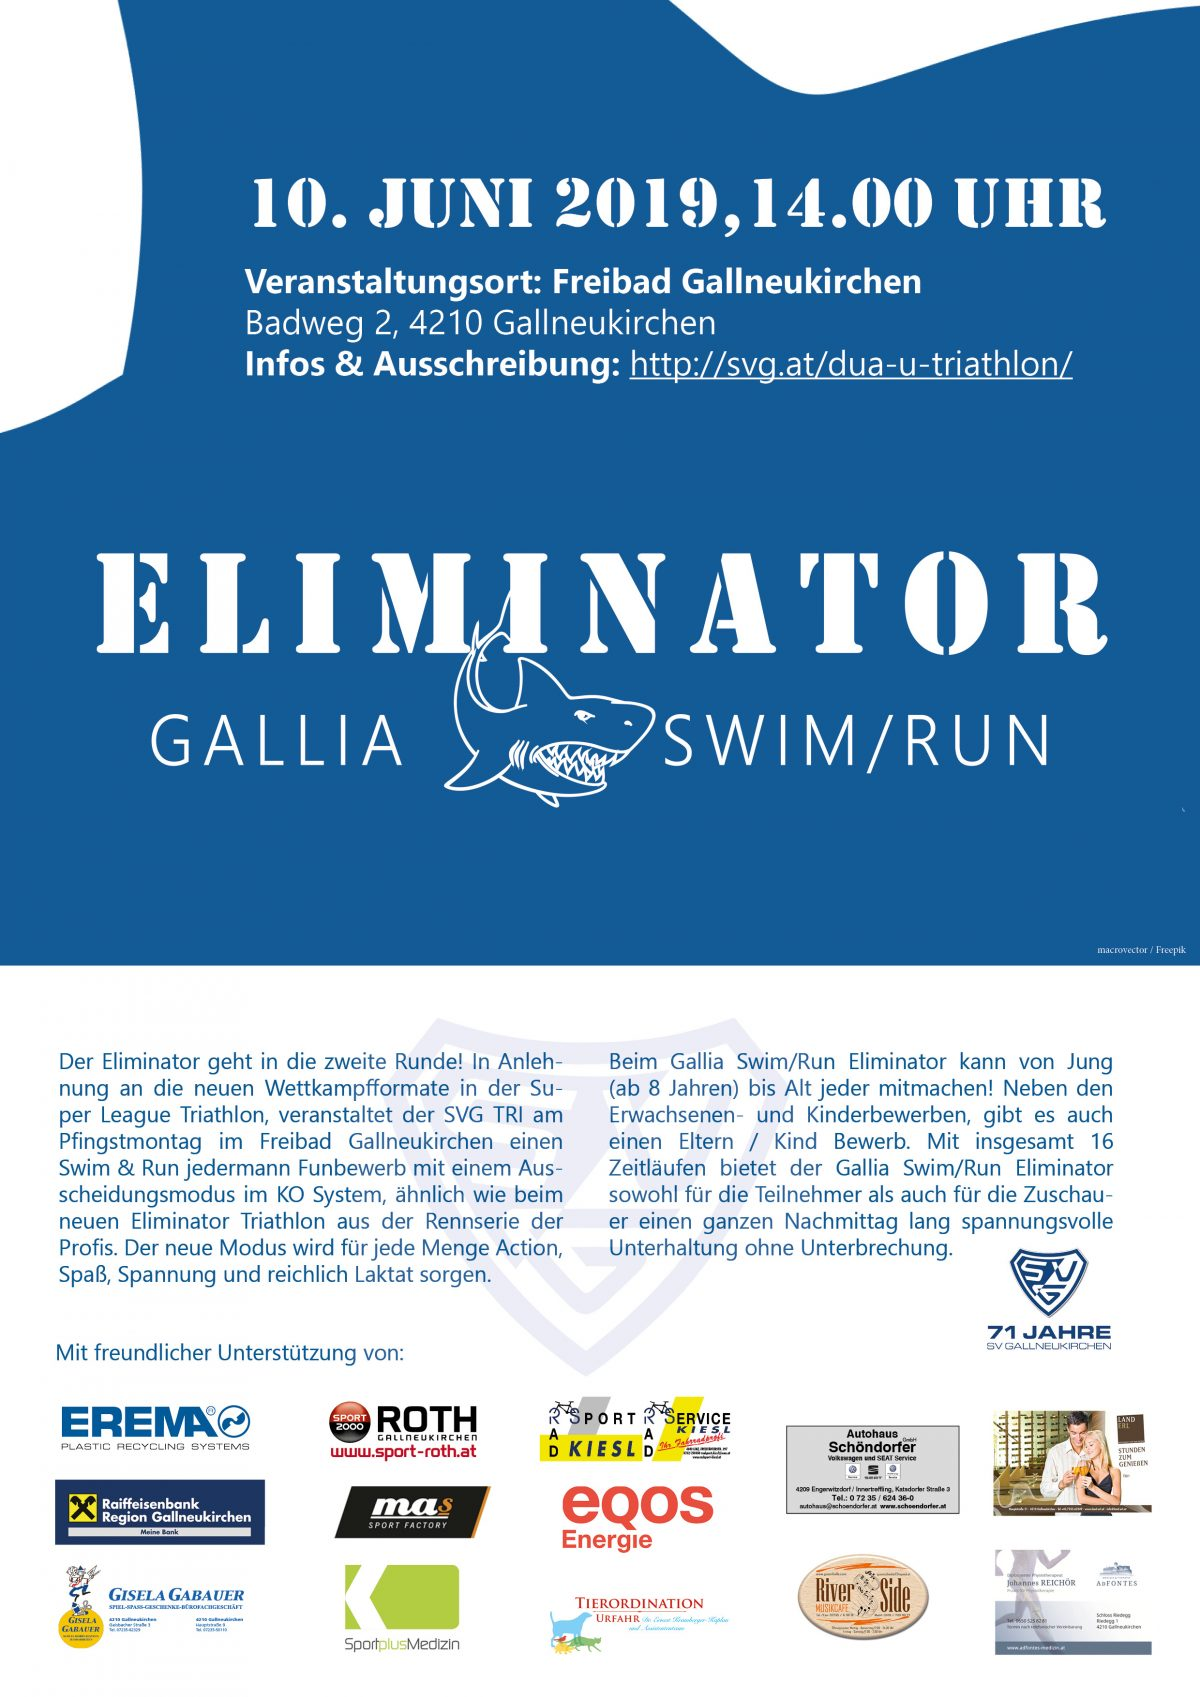 2019_05_03_Infoflyer_gallia_eliminatorv_2Seiten